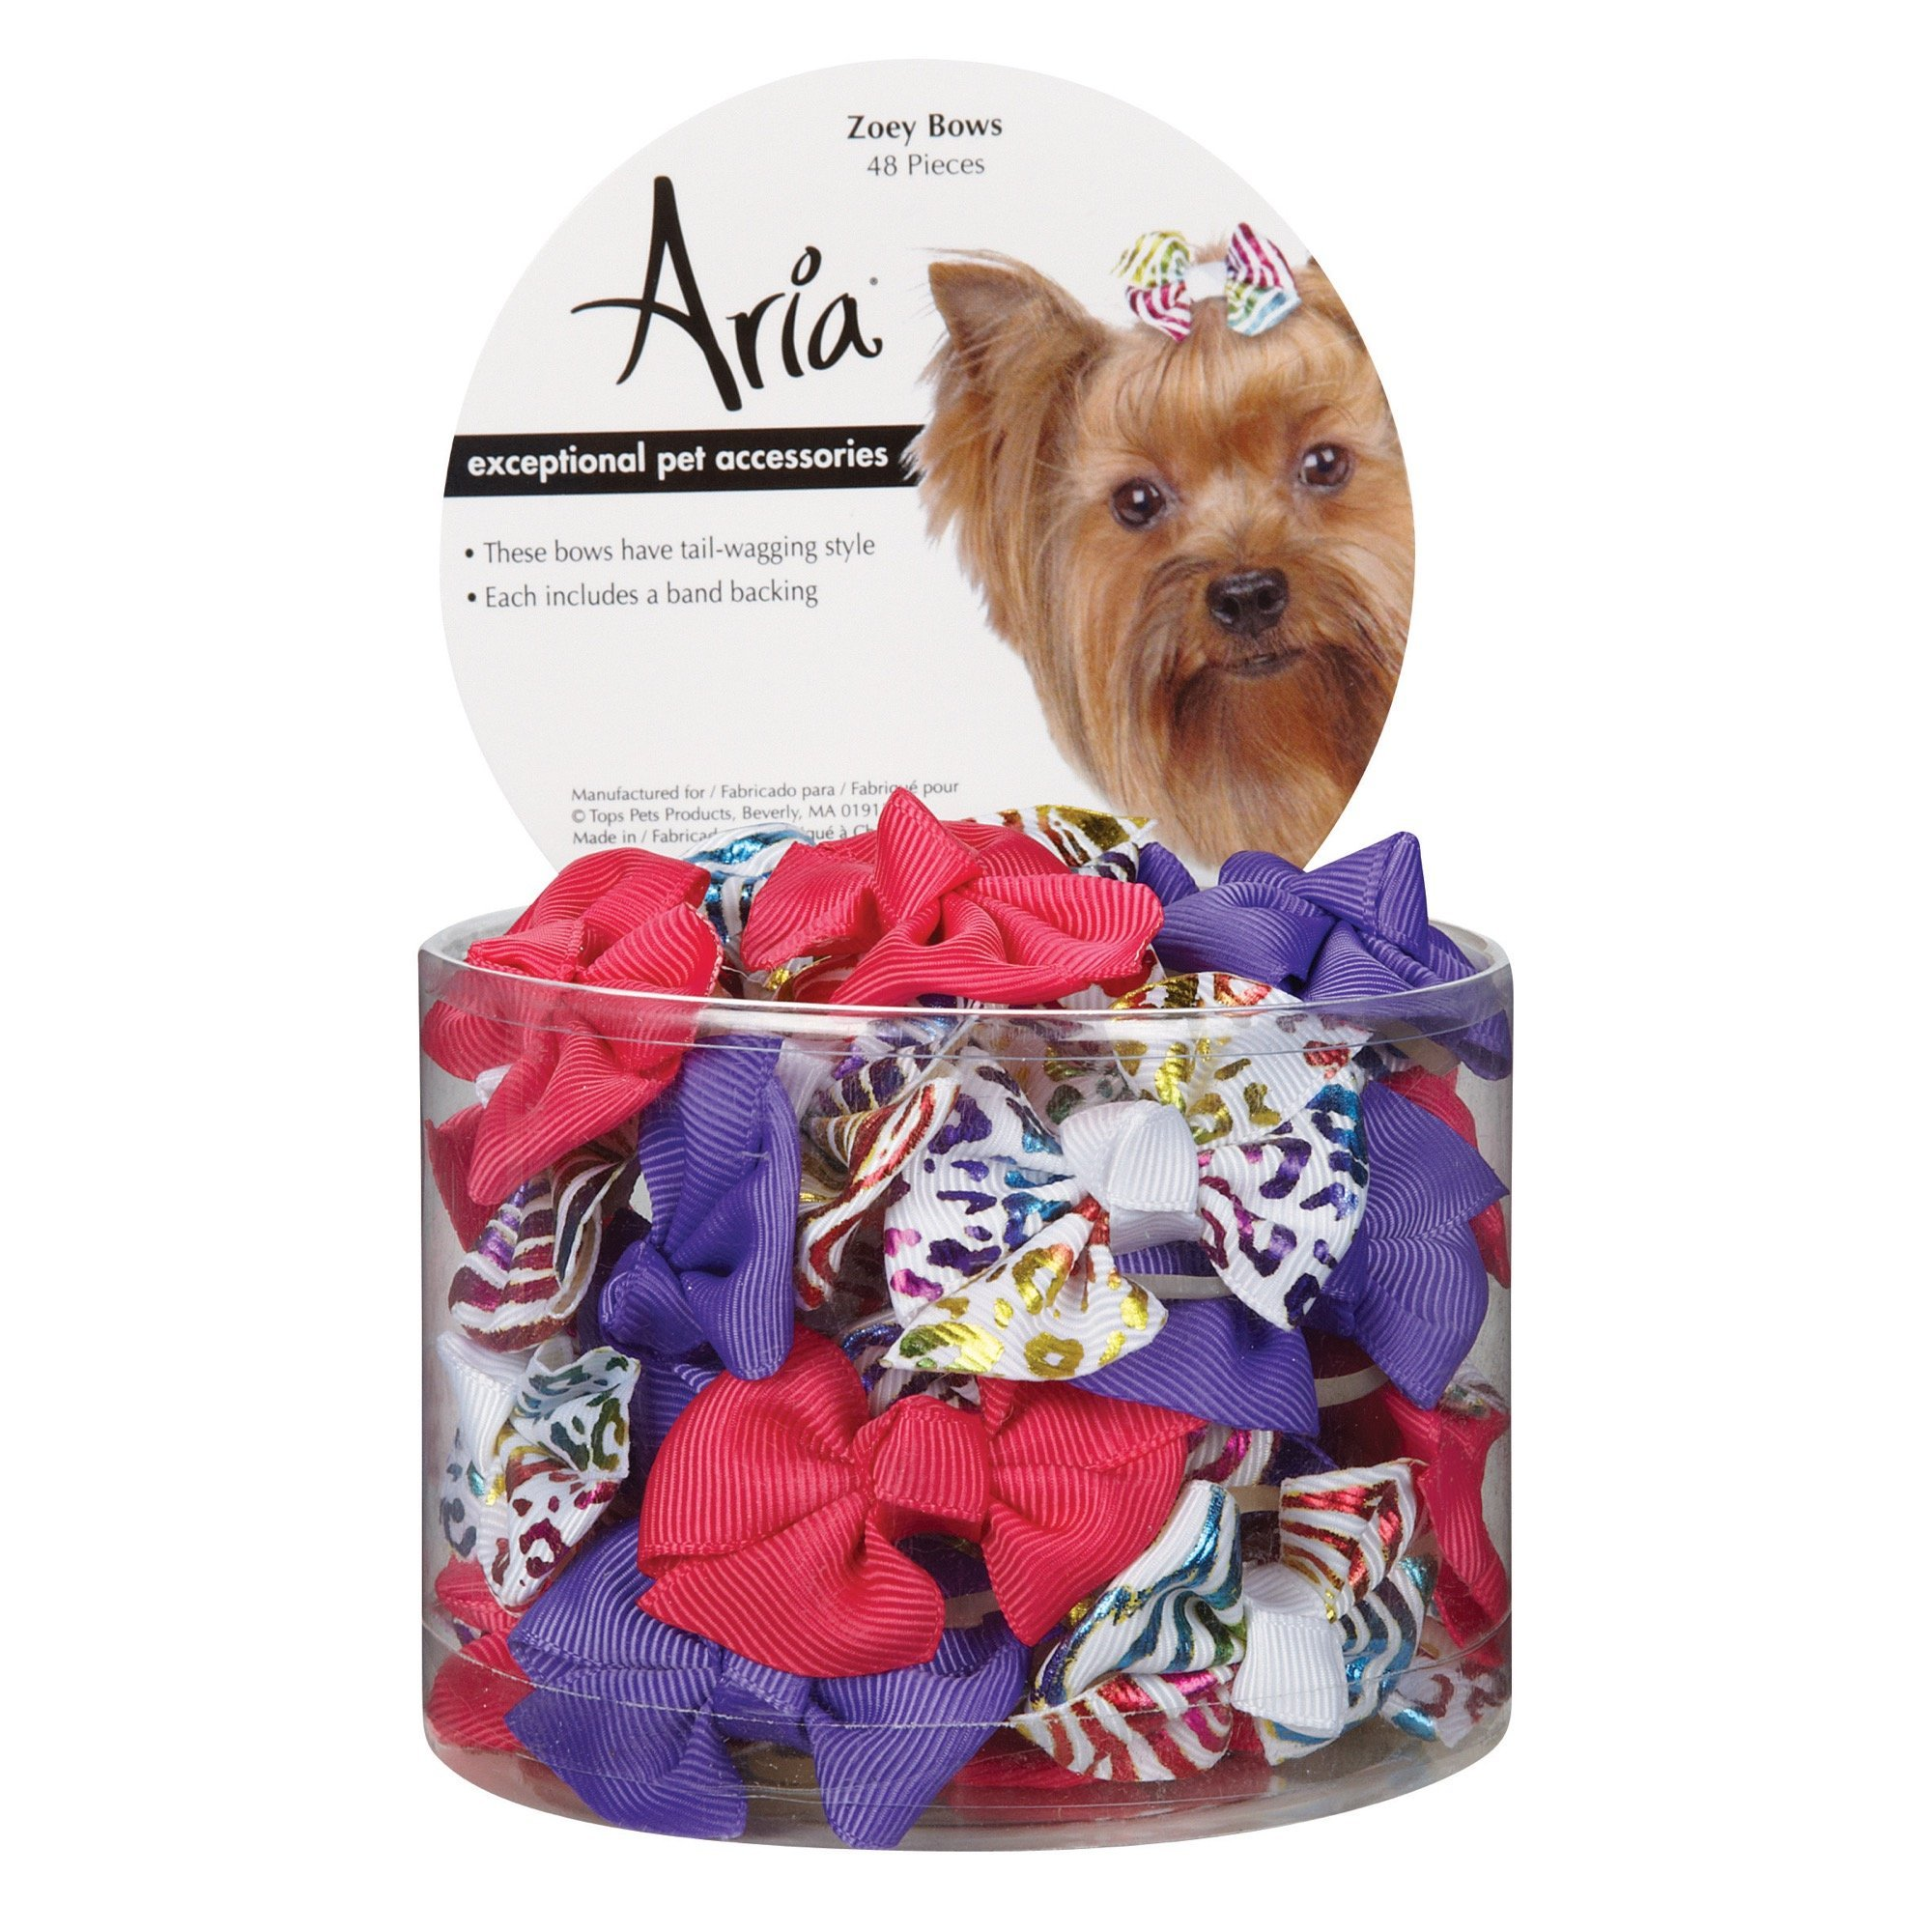 Aria Zoey Bows for Dogs, 48-Piece Canisters